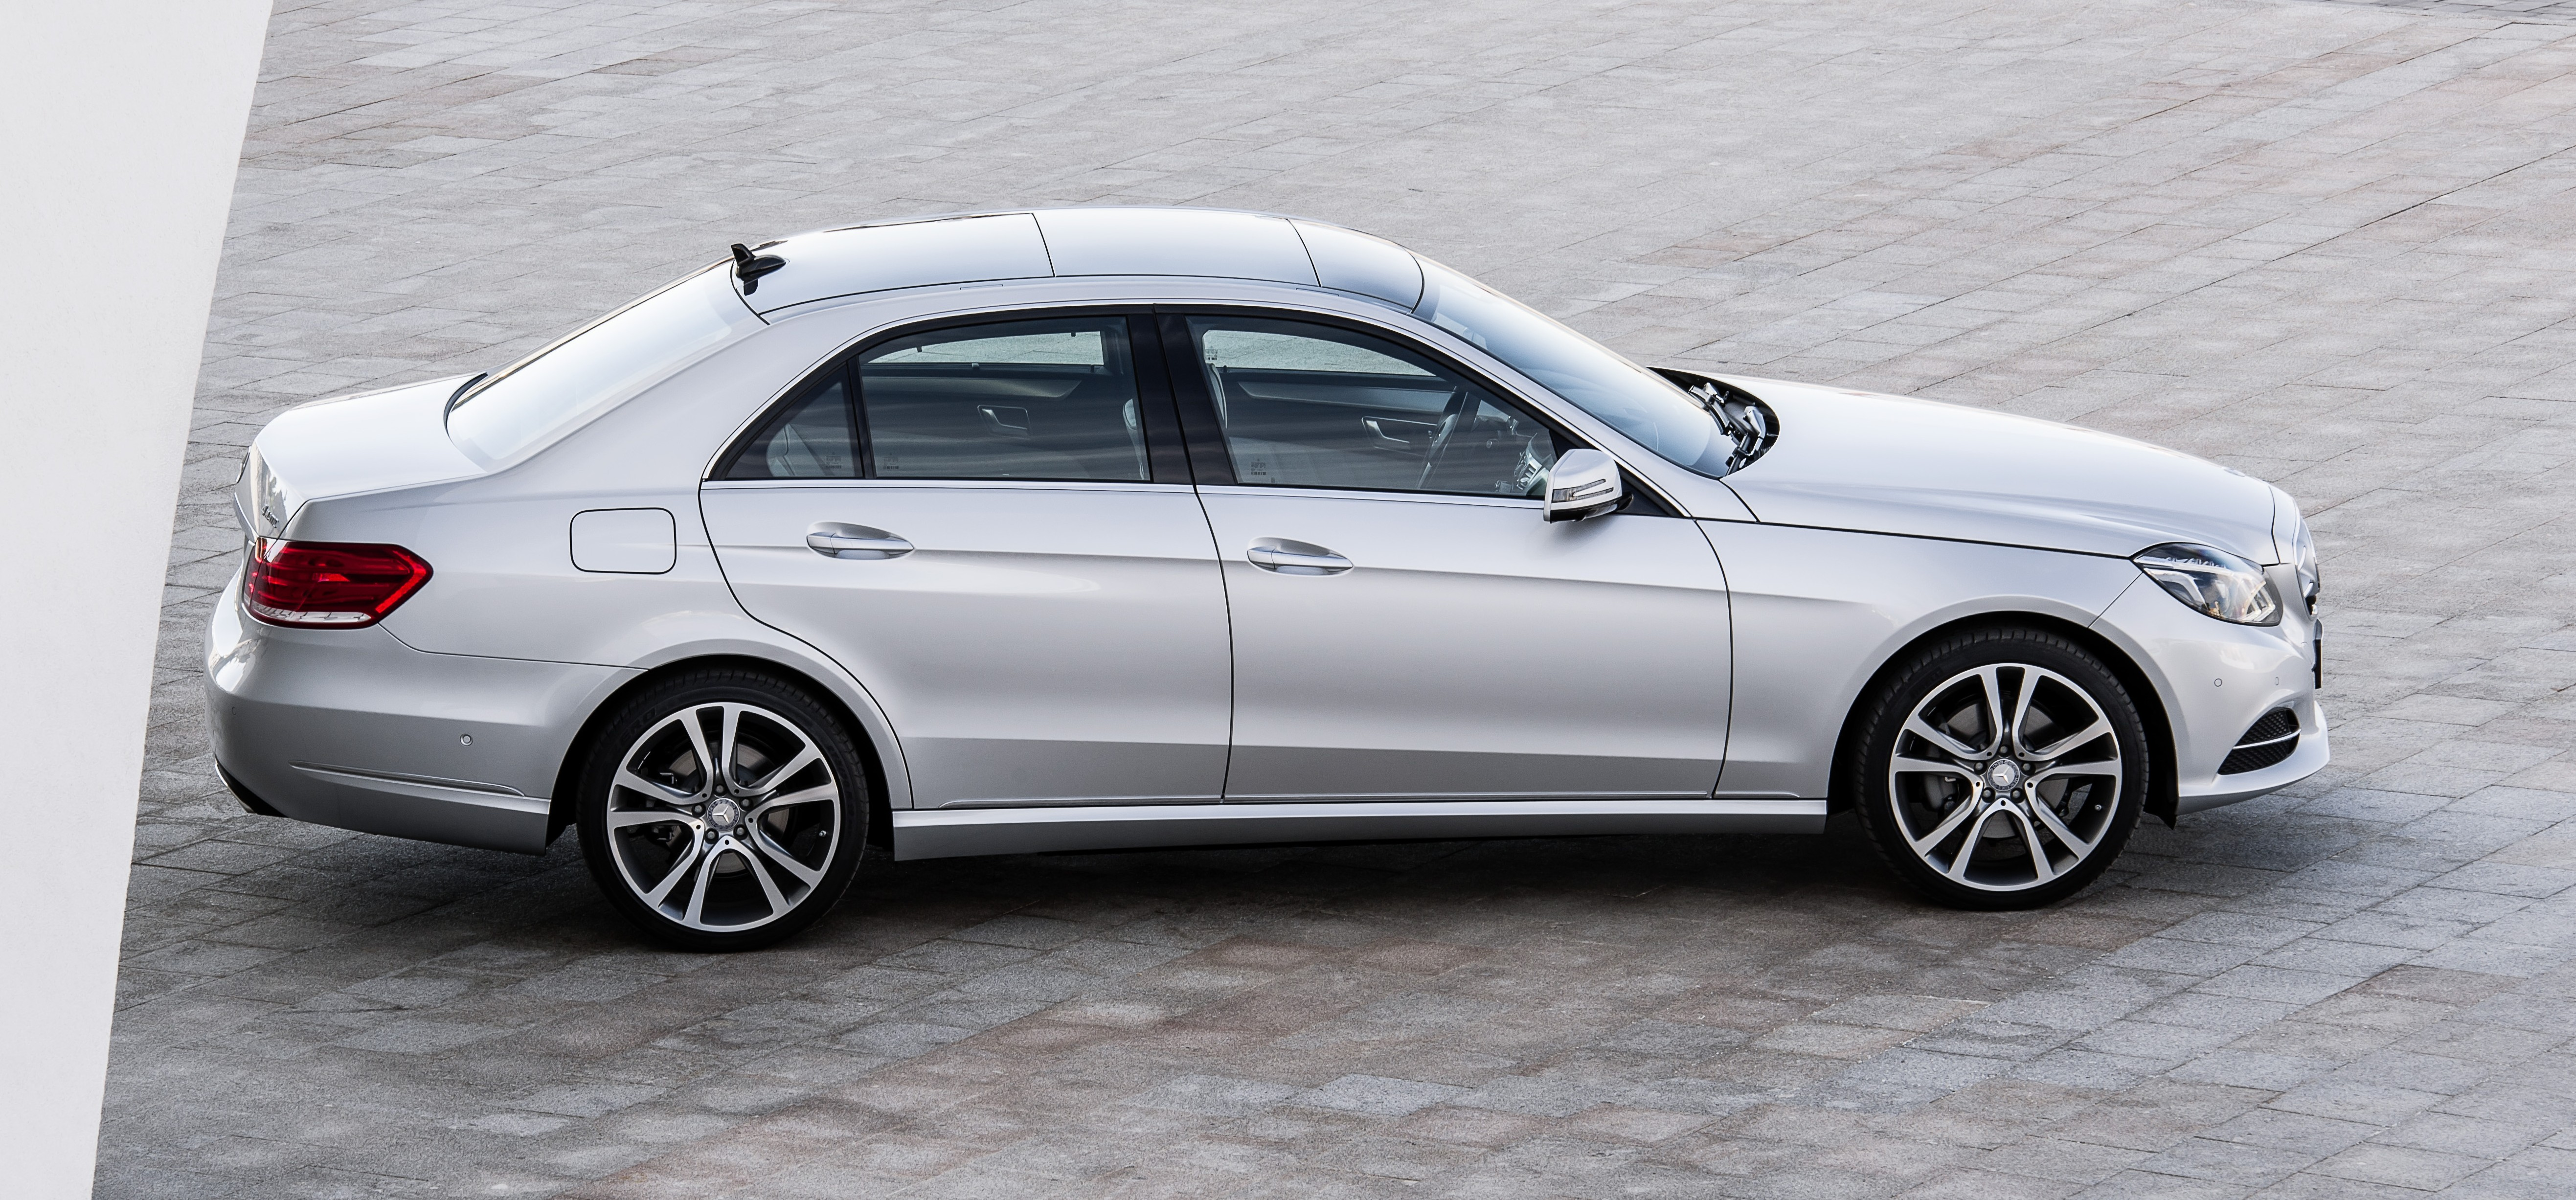 W212 Mercedes Benz E Class Facelift Unveiled Paul Tan